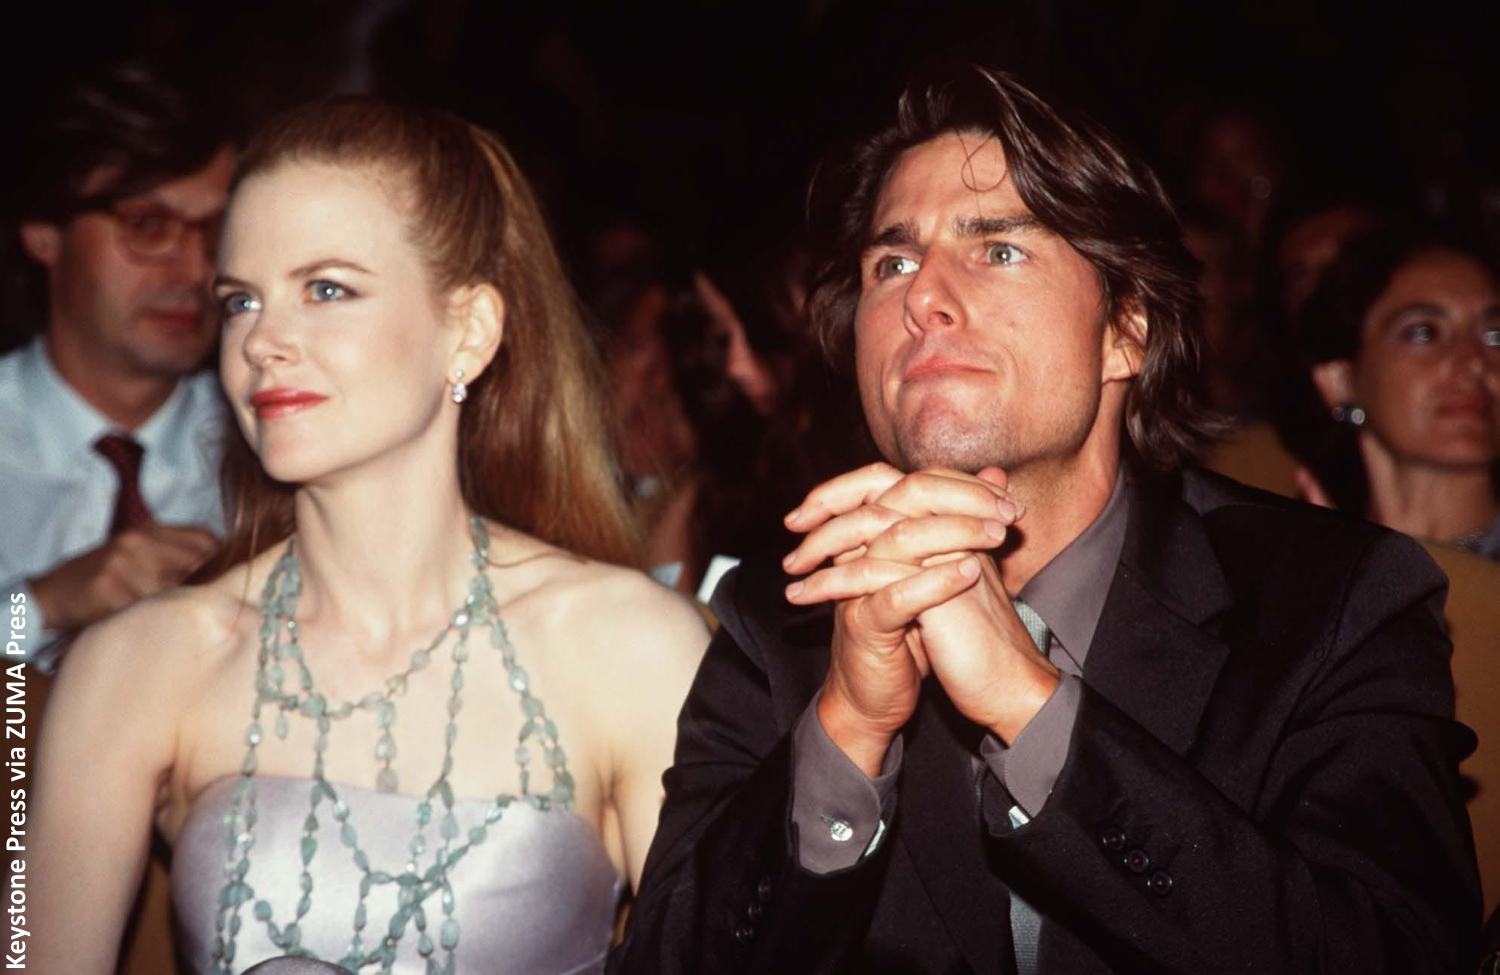 Top 60 Most Shocking Celebrity Smokers - Taddlr